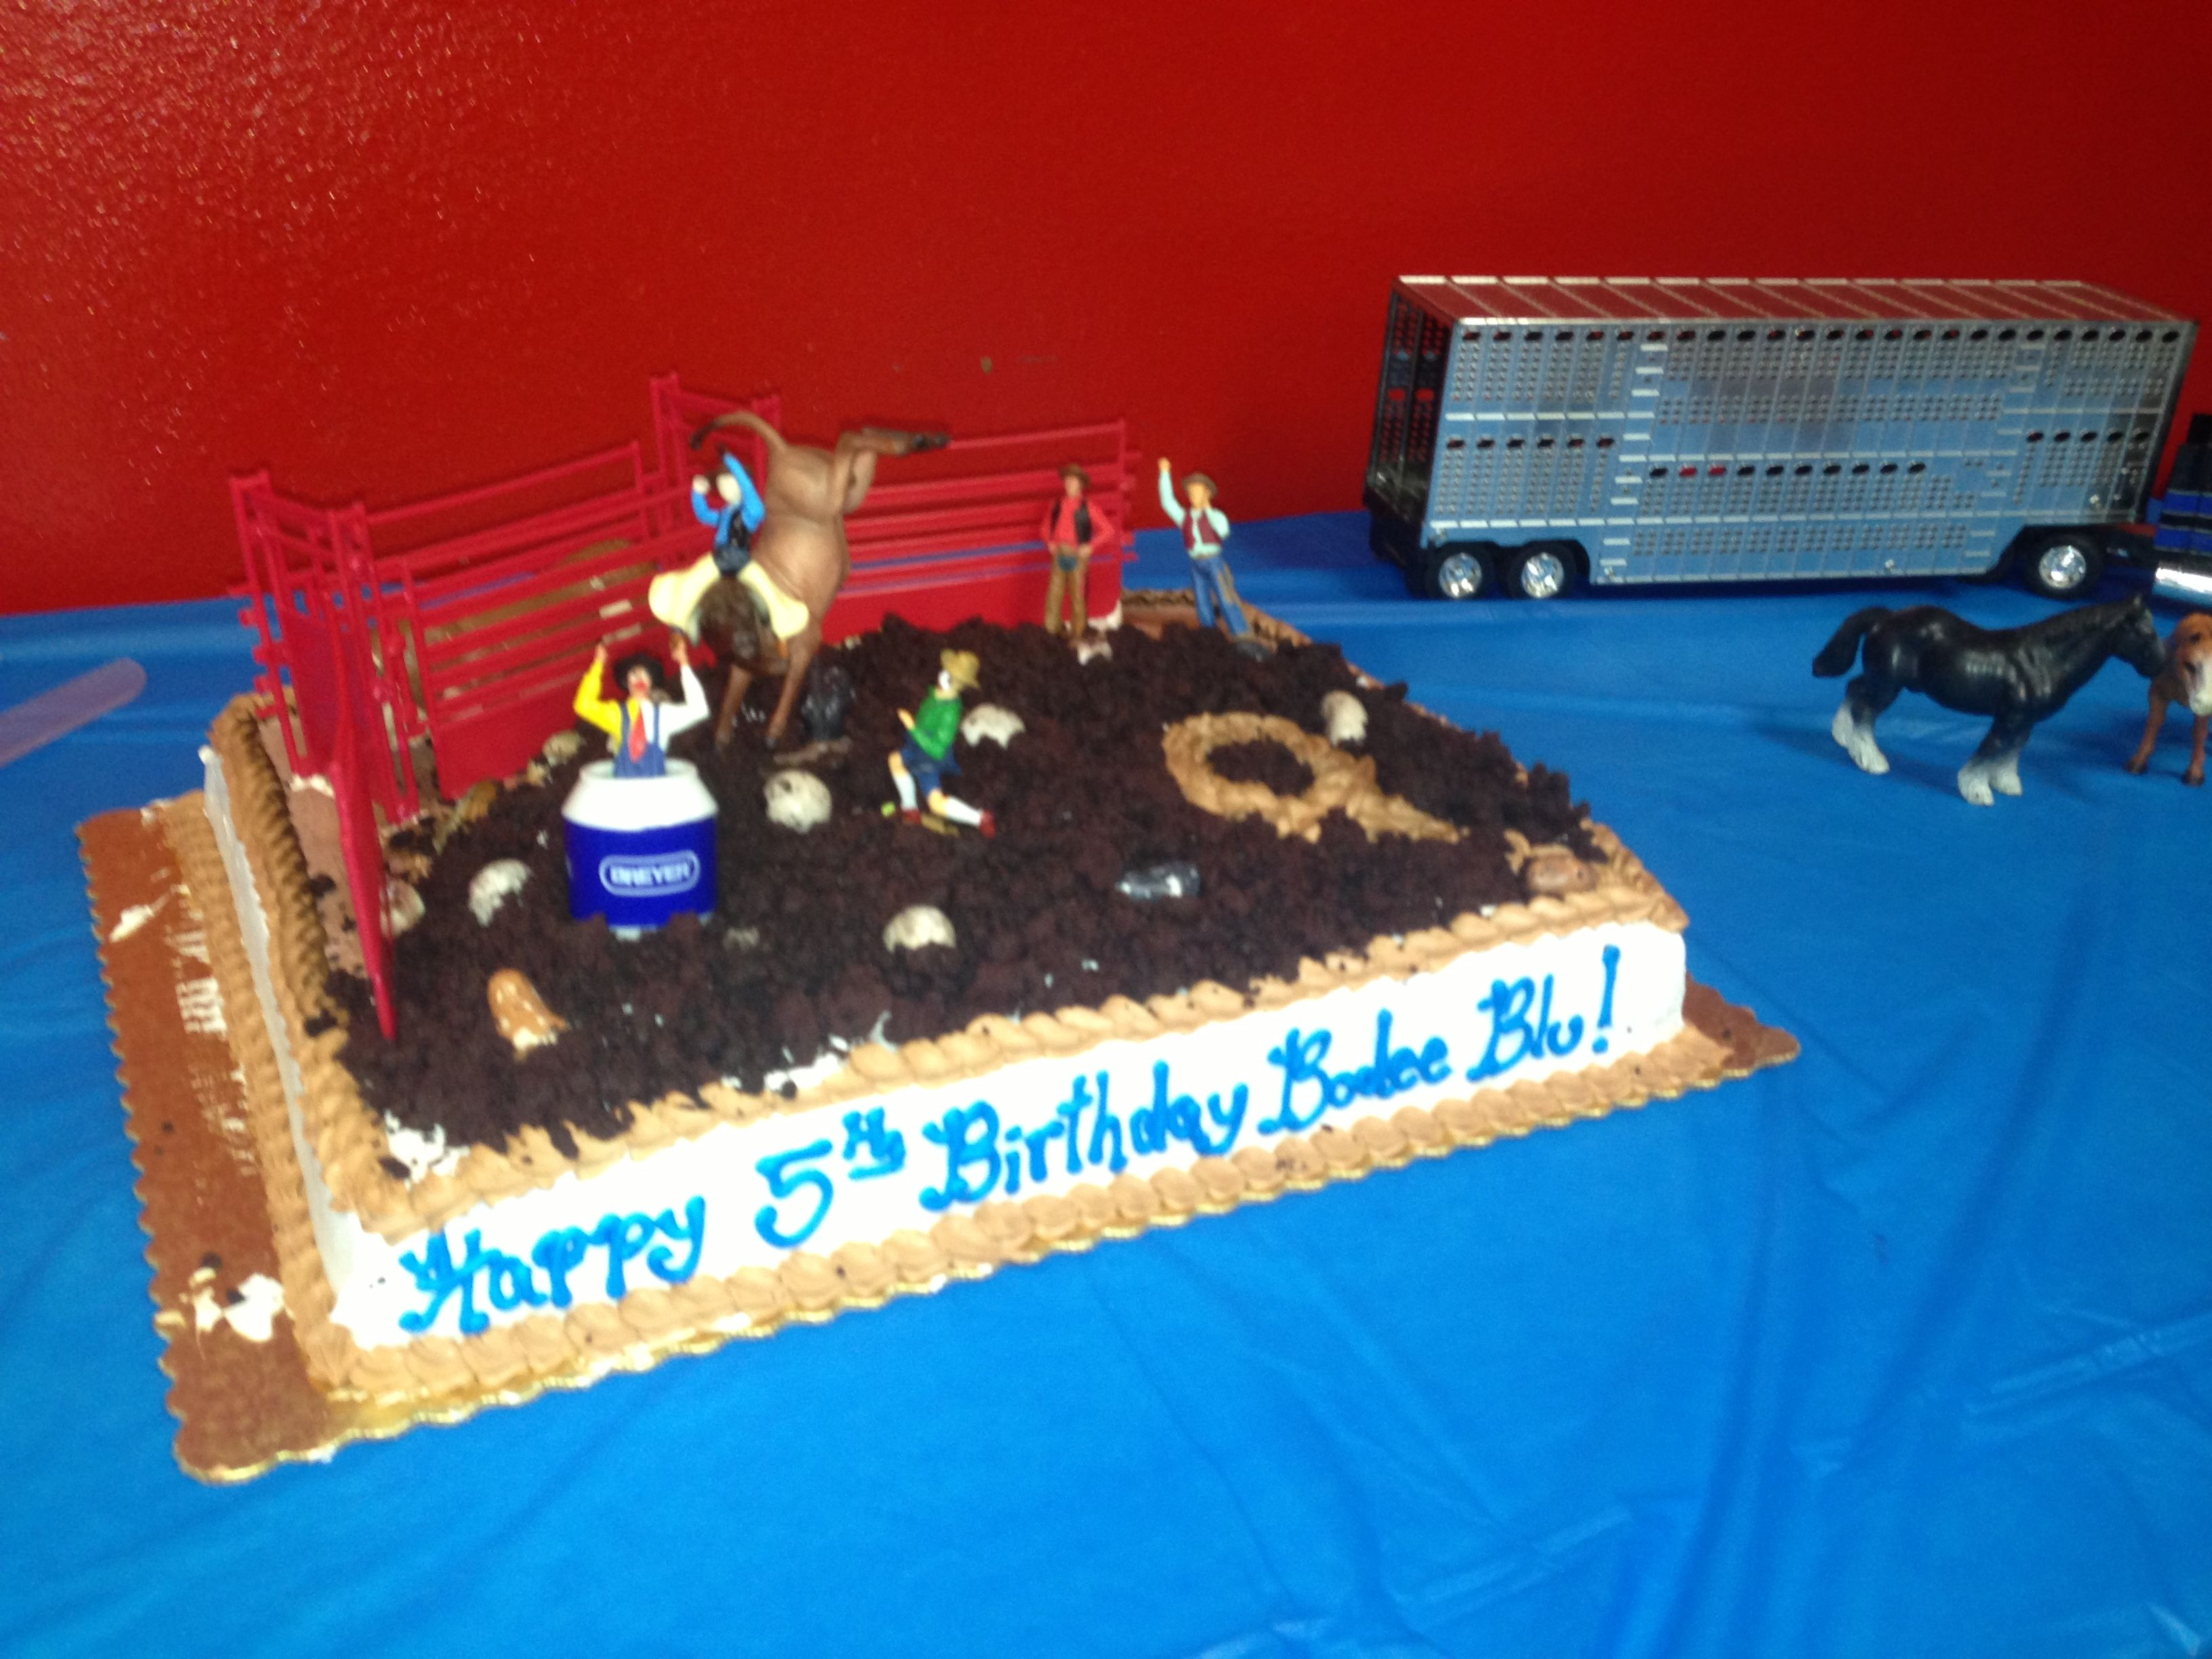 5th birthday cake Bucking bull rodeo theme Party Ideas Pinterest